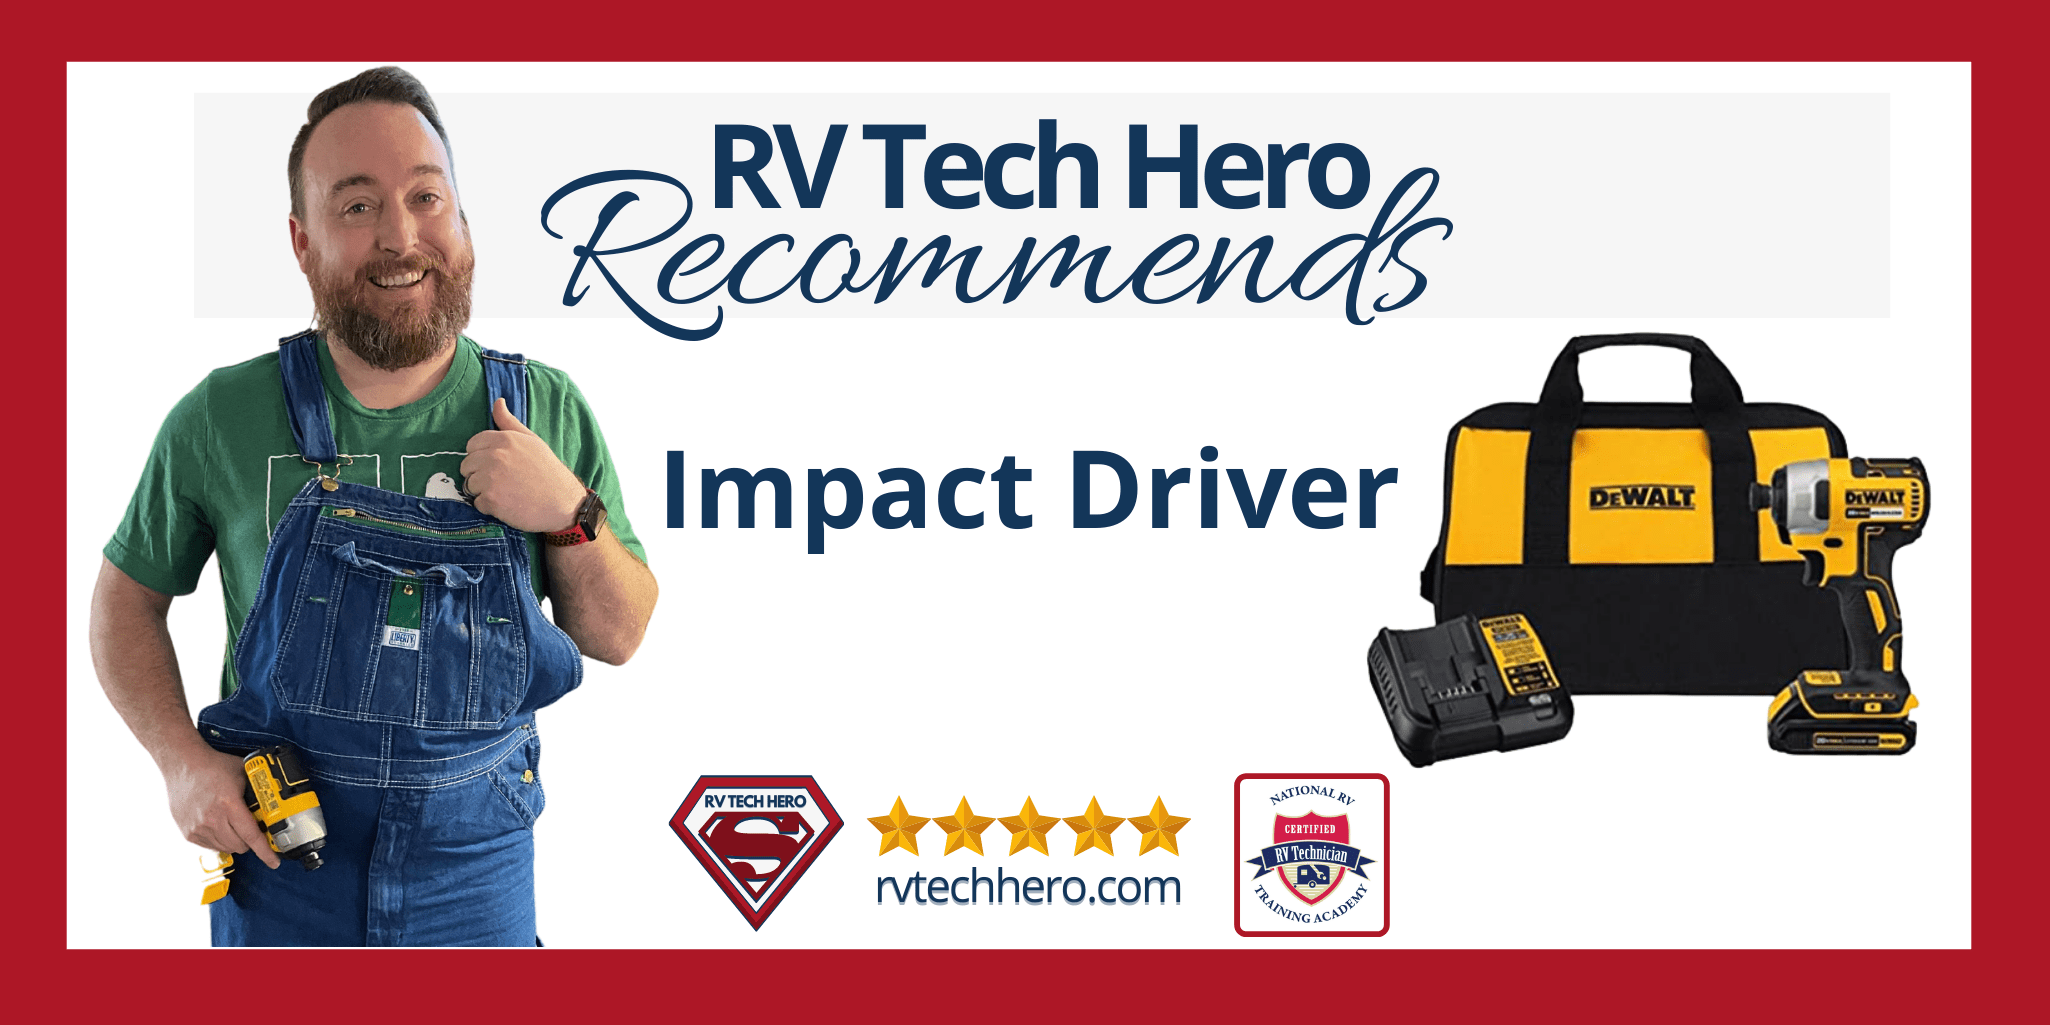 RV Tech Hero Recommends Impact Driver